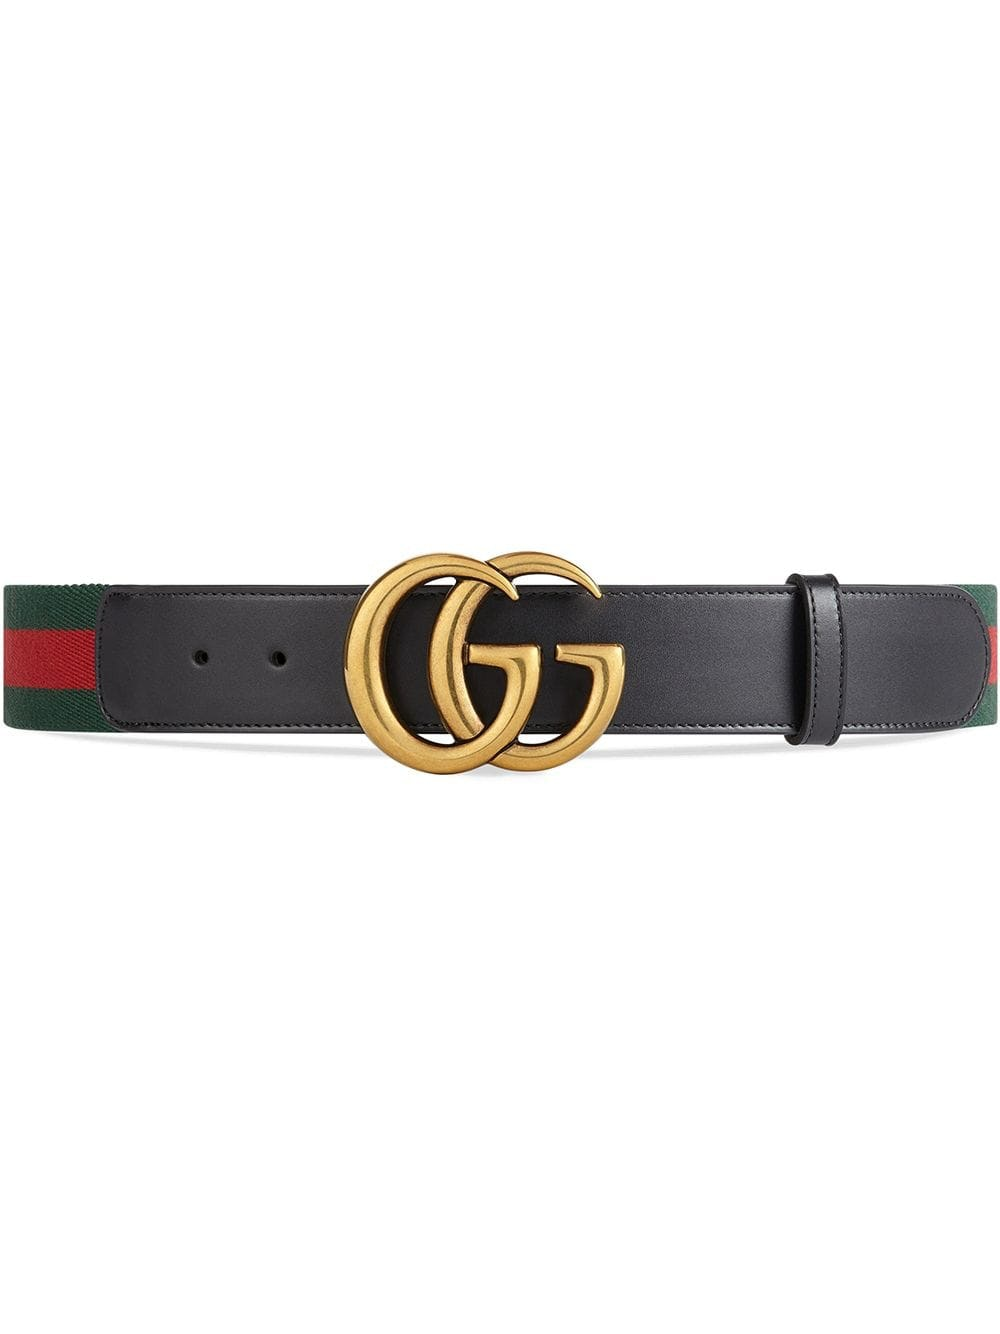 Gucci Belt Green/Red Web Double G Brass Buckle 1.5W Black